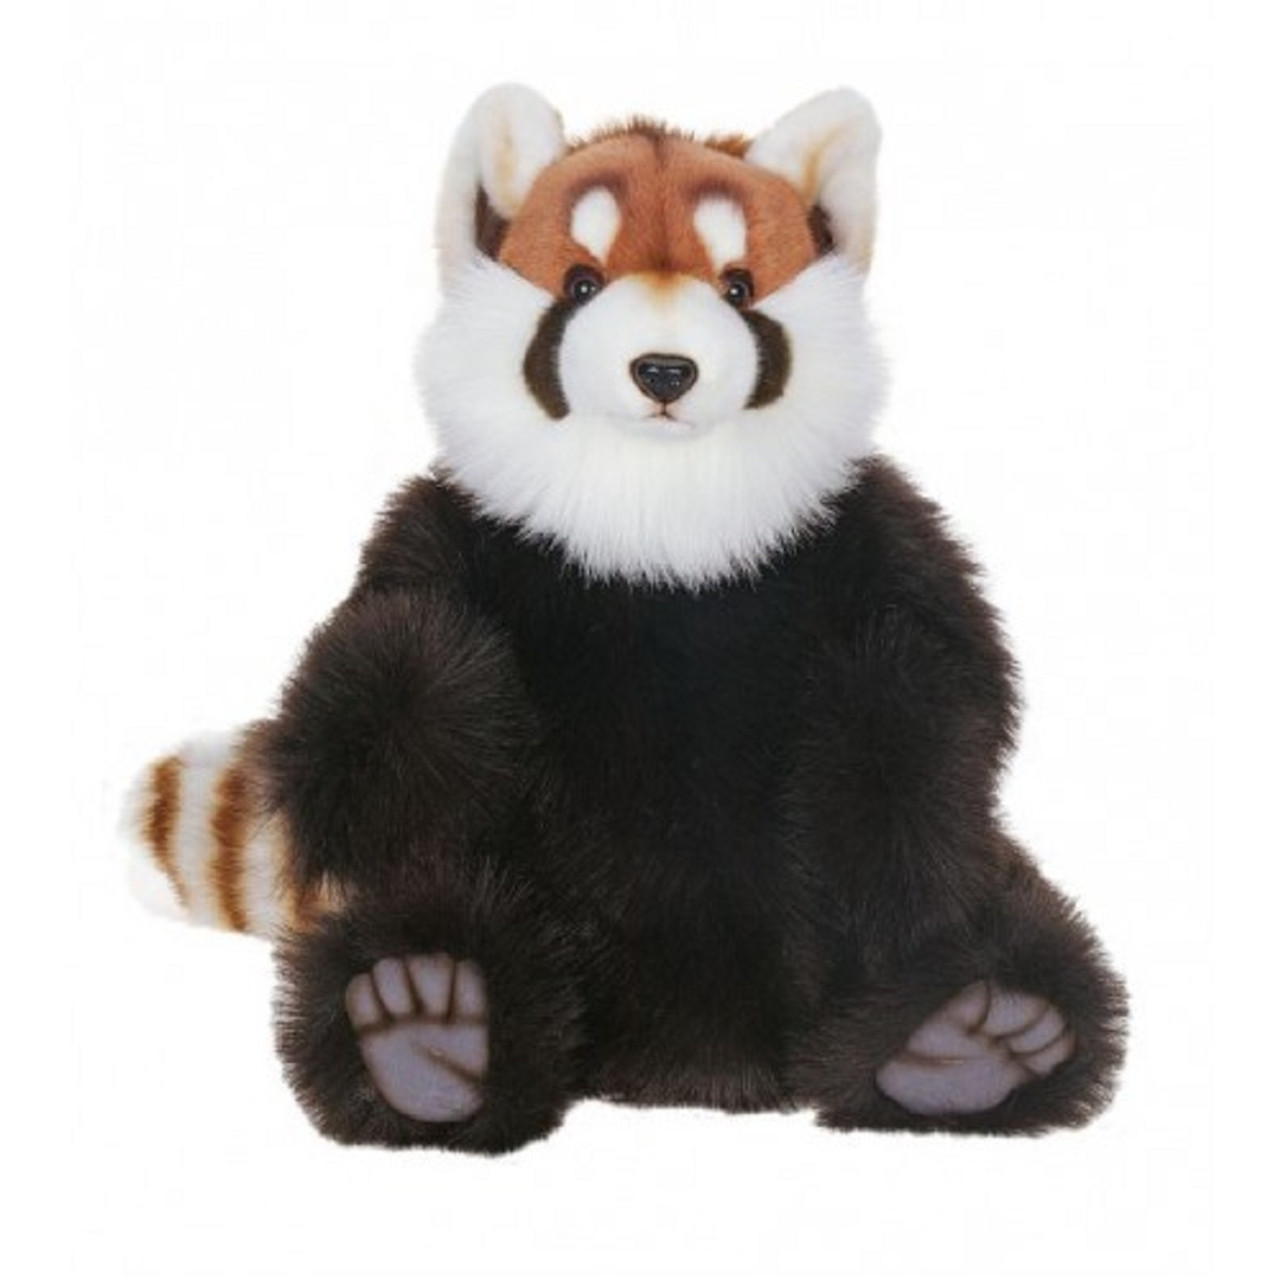 Pack Of 2 Life Like Handcrafted Extra Soft Plush Red Panda Stuffed